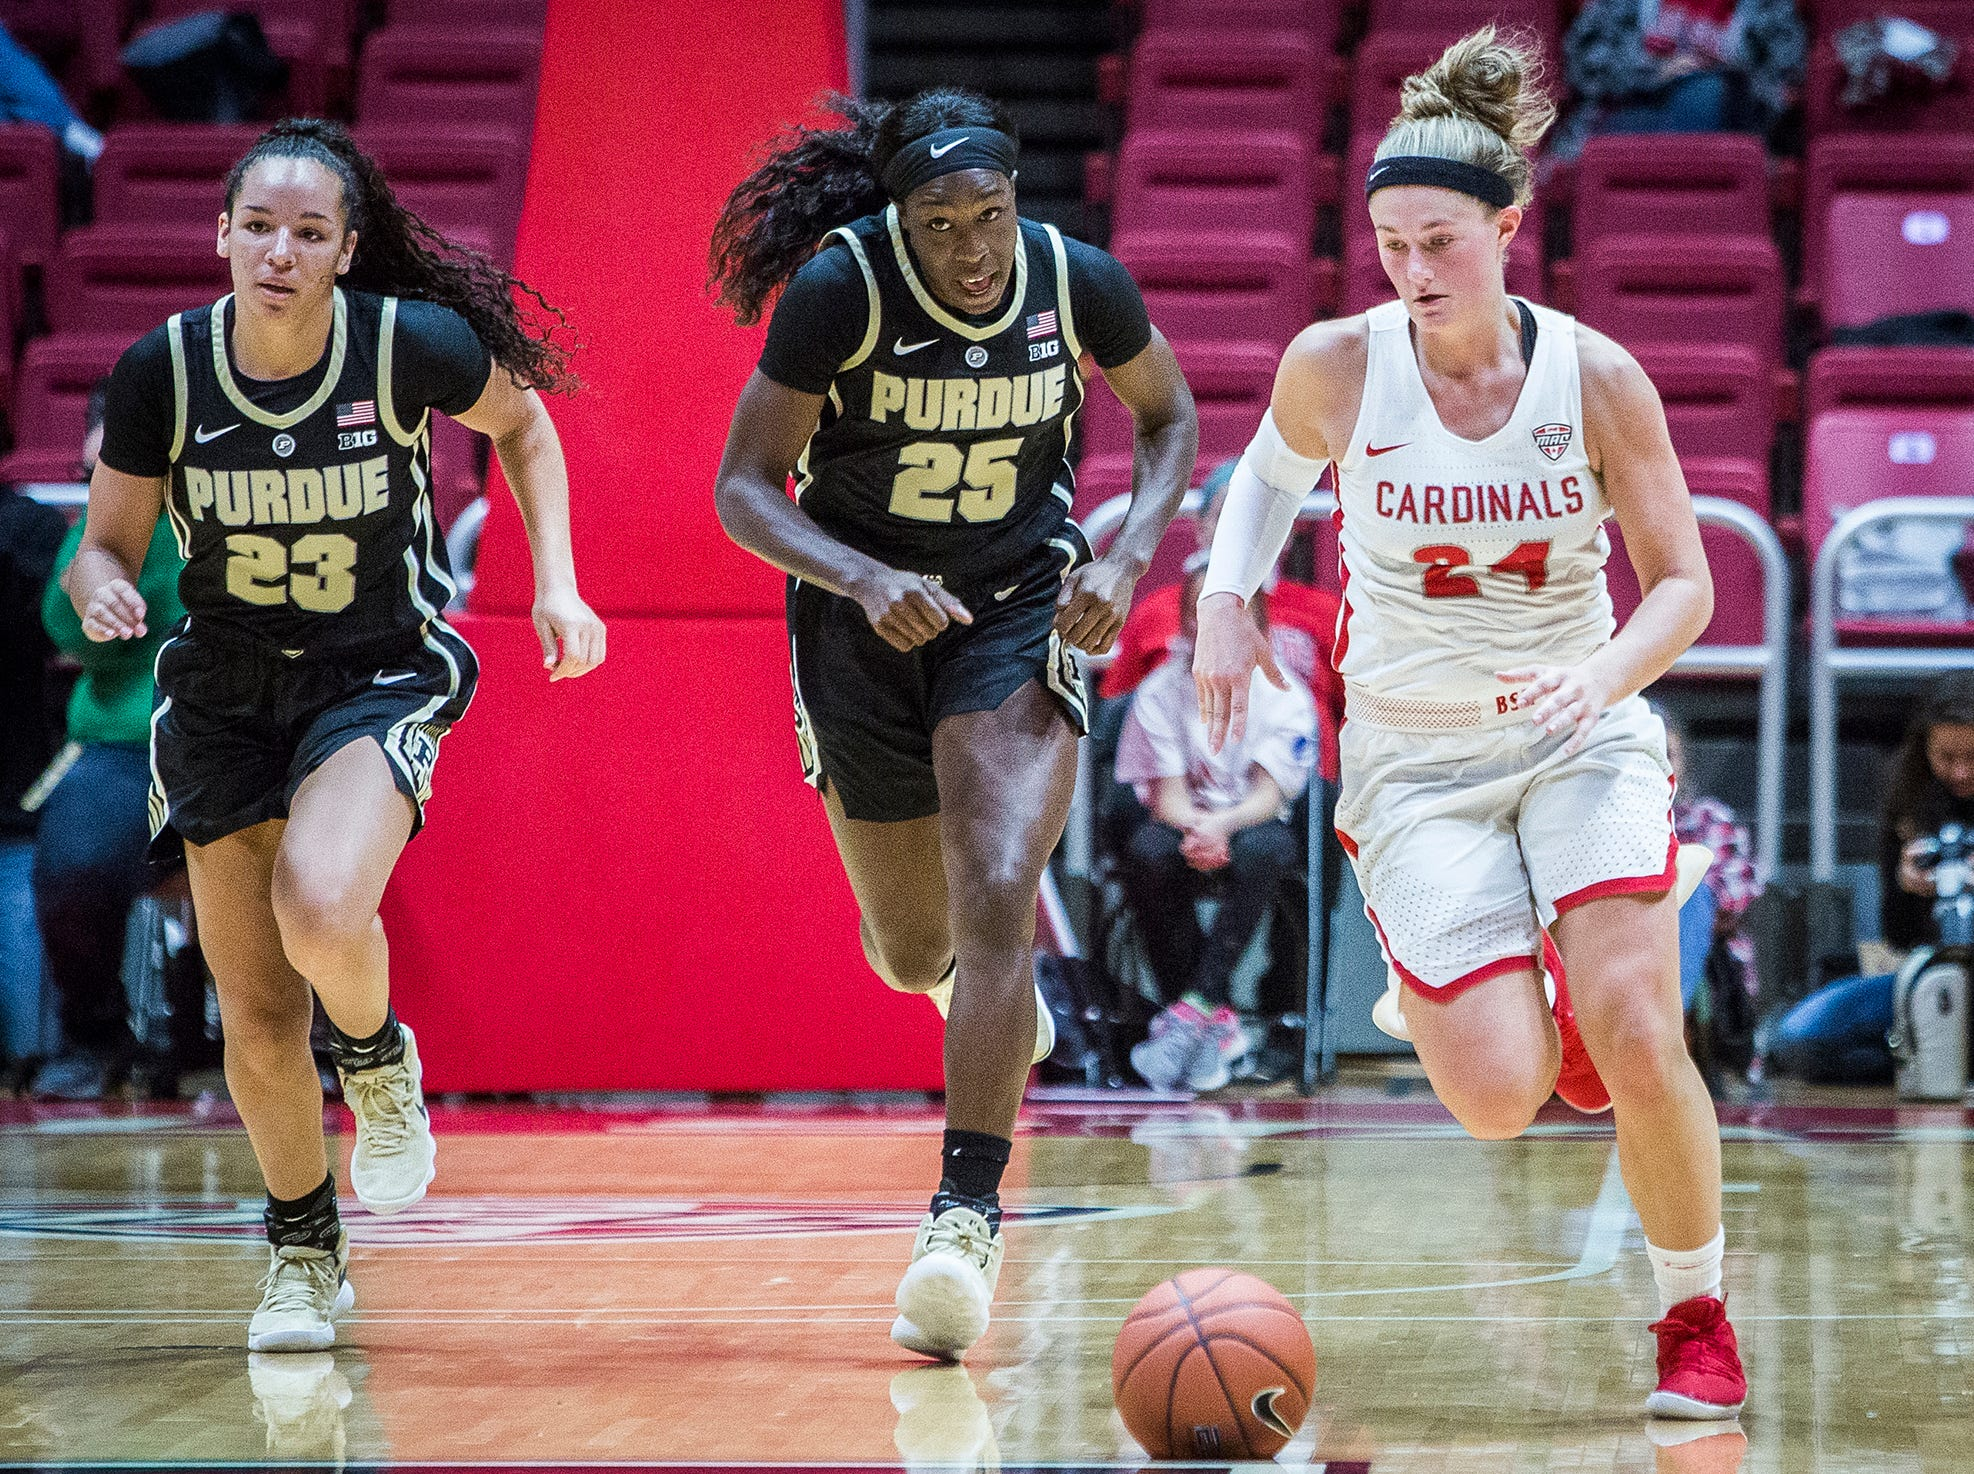 Ball State's Jasmin Samz moves the ball against Purdue's defense during their game at Worthen Arena Wednesday, Nov. 7, 2018.